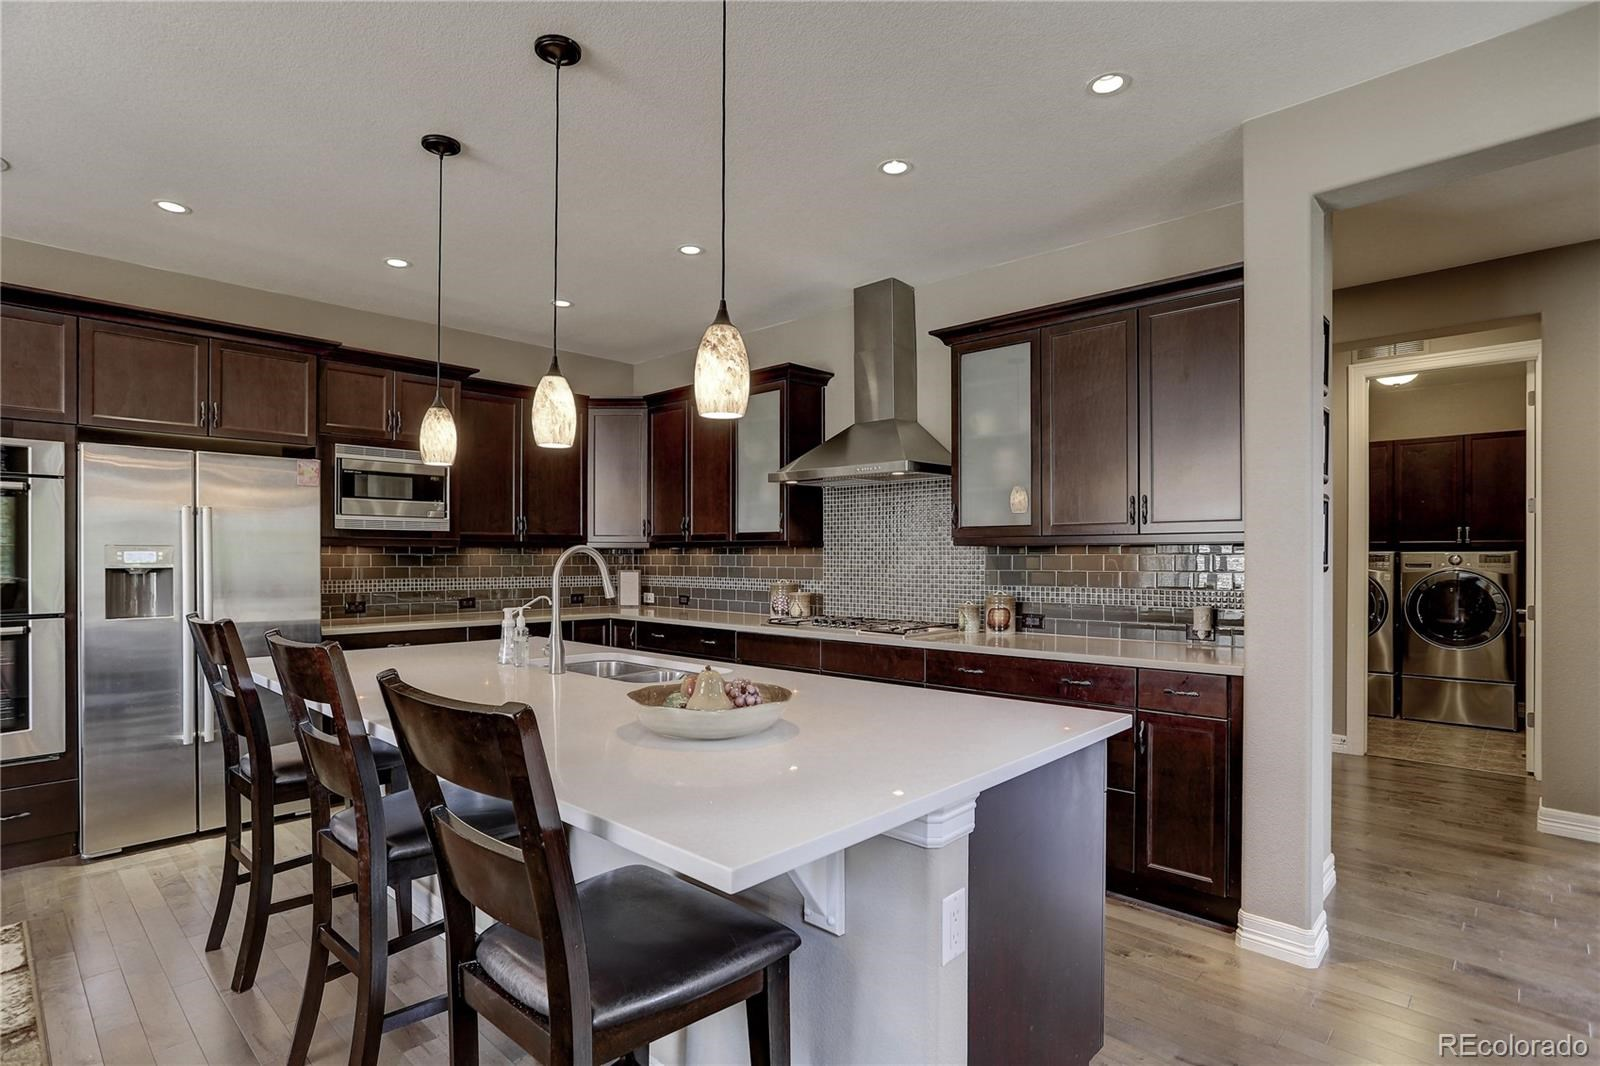 MLS# 8360577 - 10 - 2247 S Isabell Court, Lakewood, CO 80228